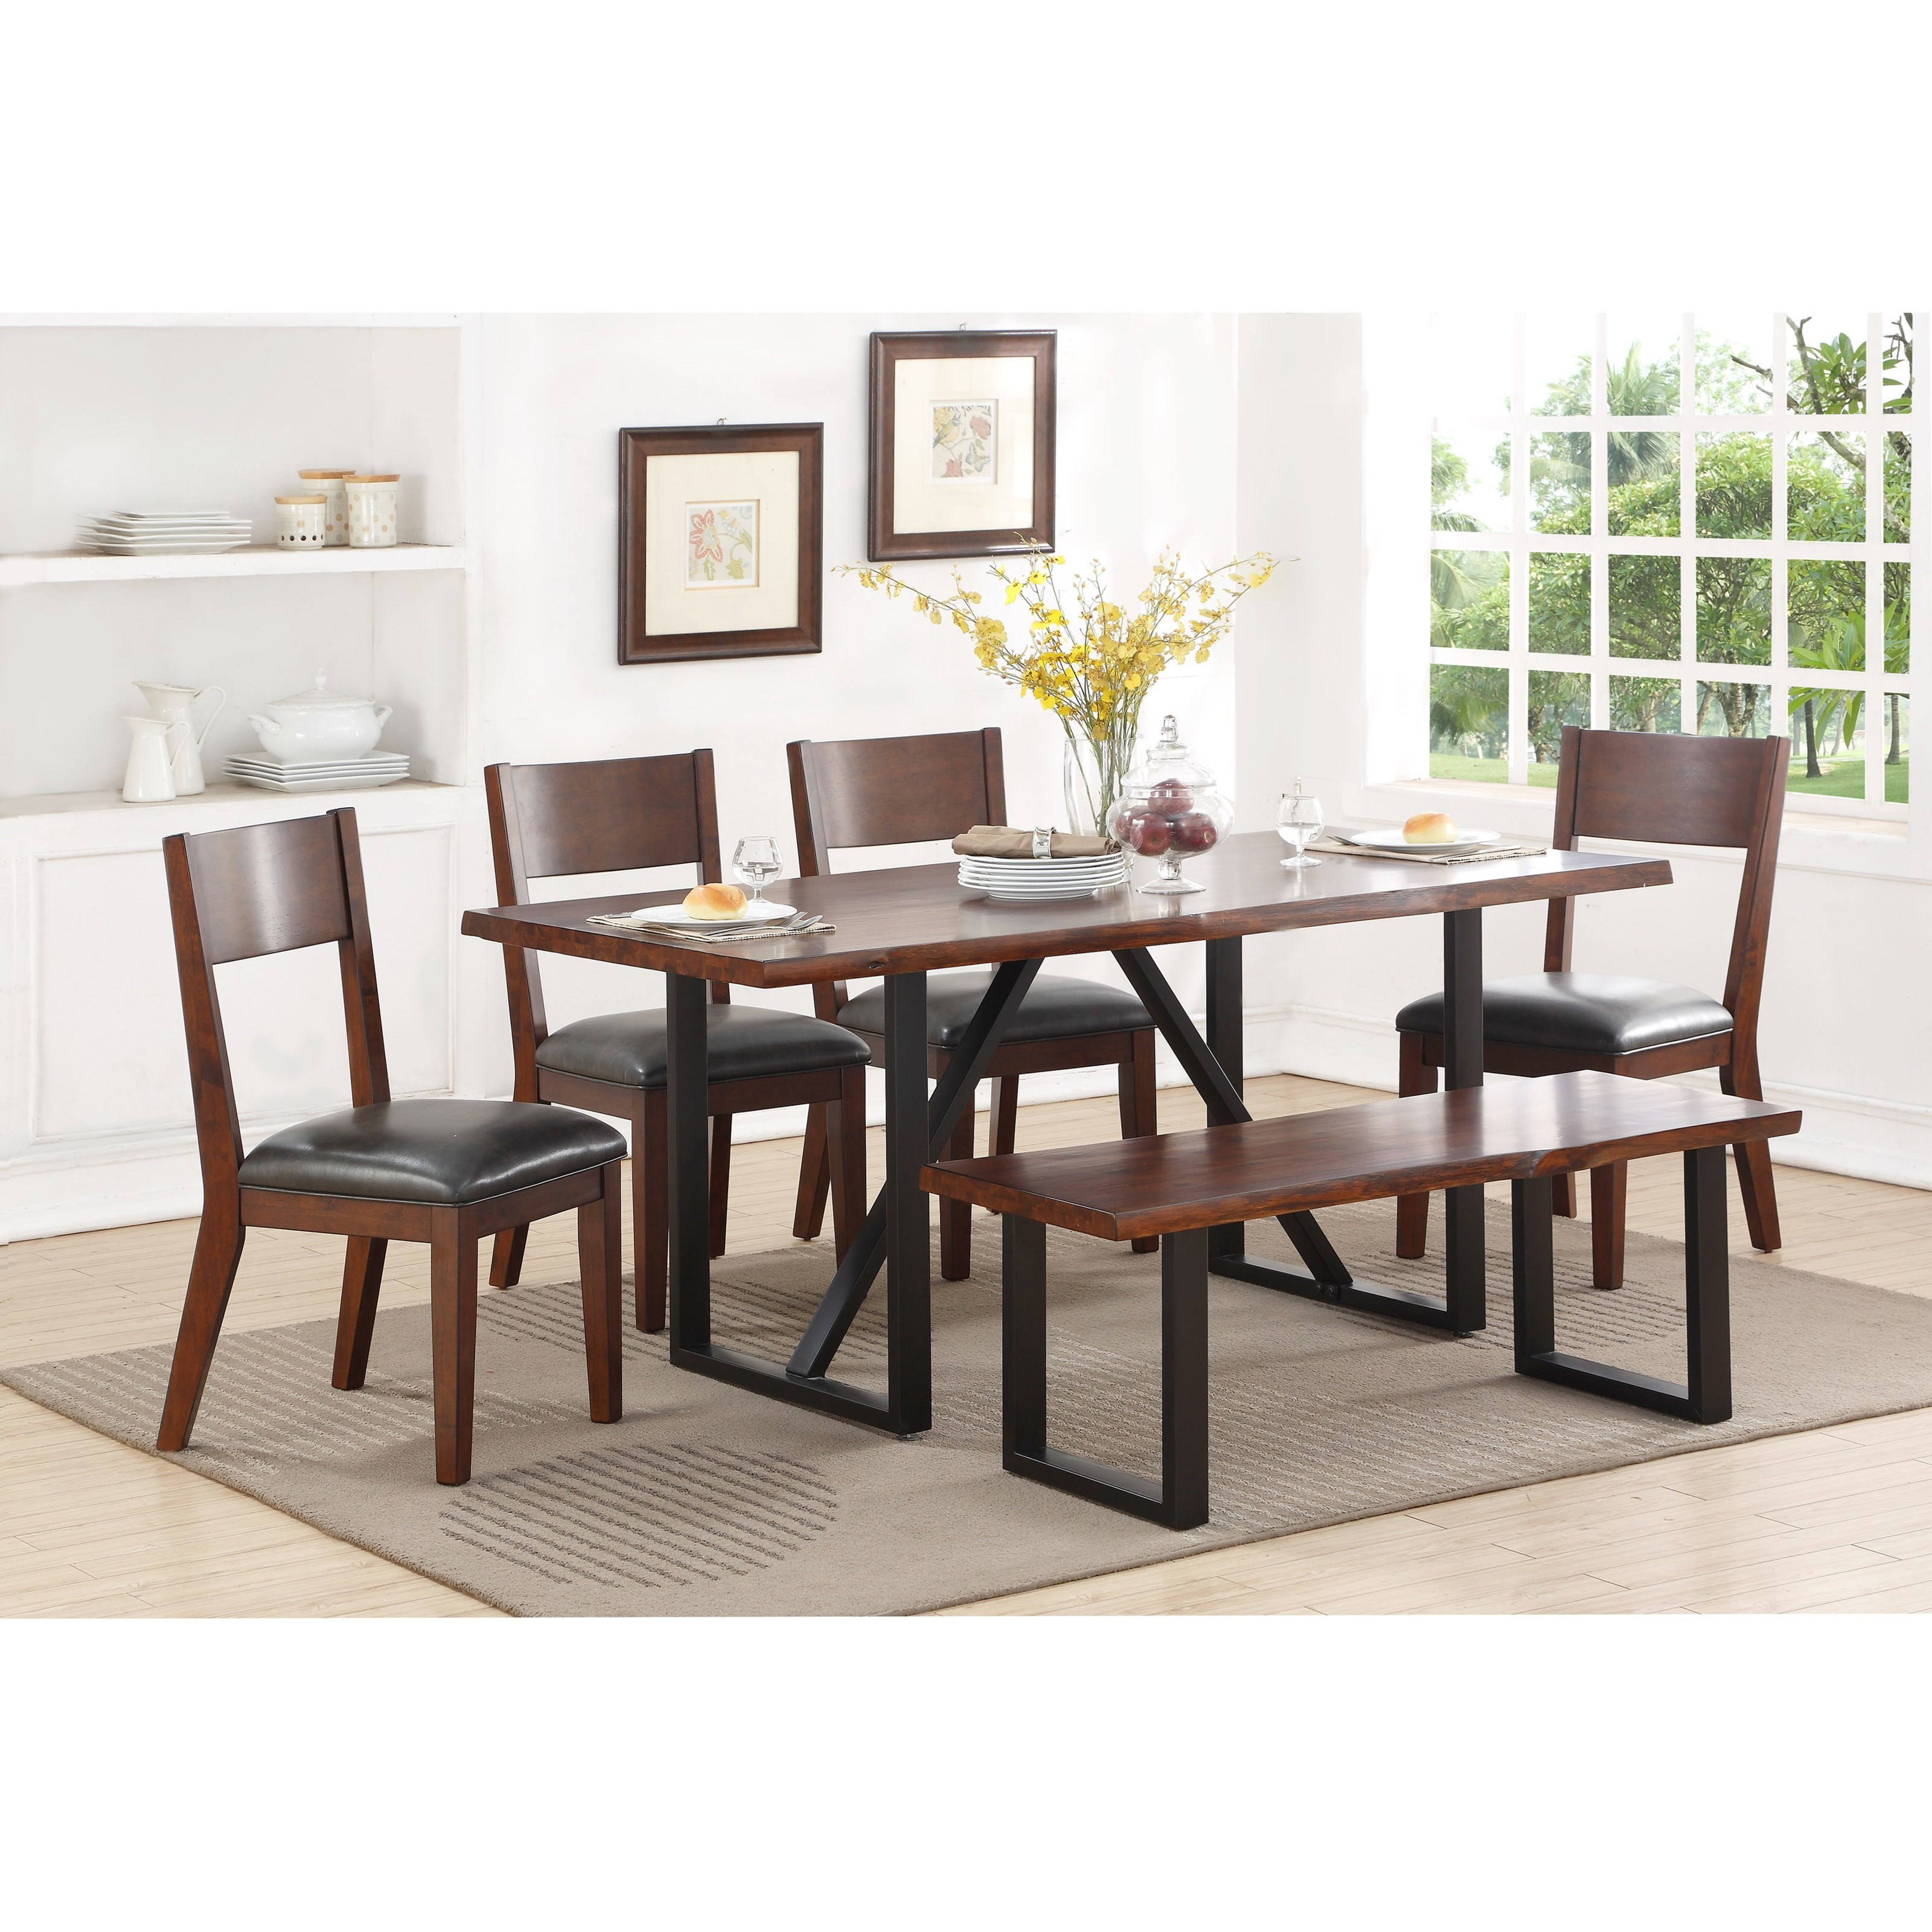 Standard Furniture Sierra II Rustic Table Set with Dining Bench